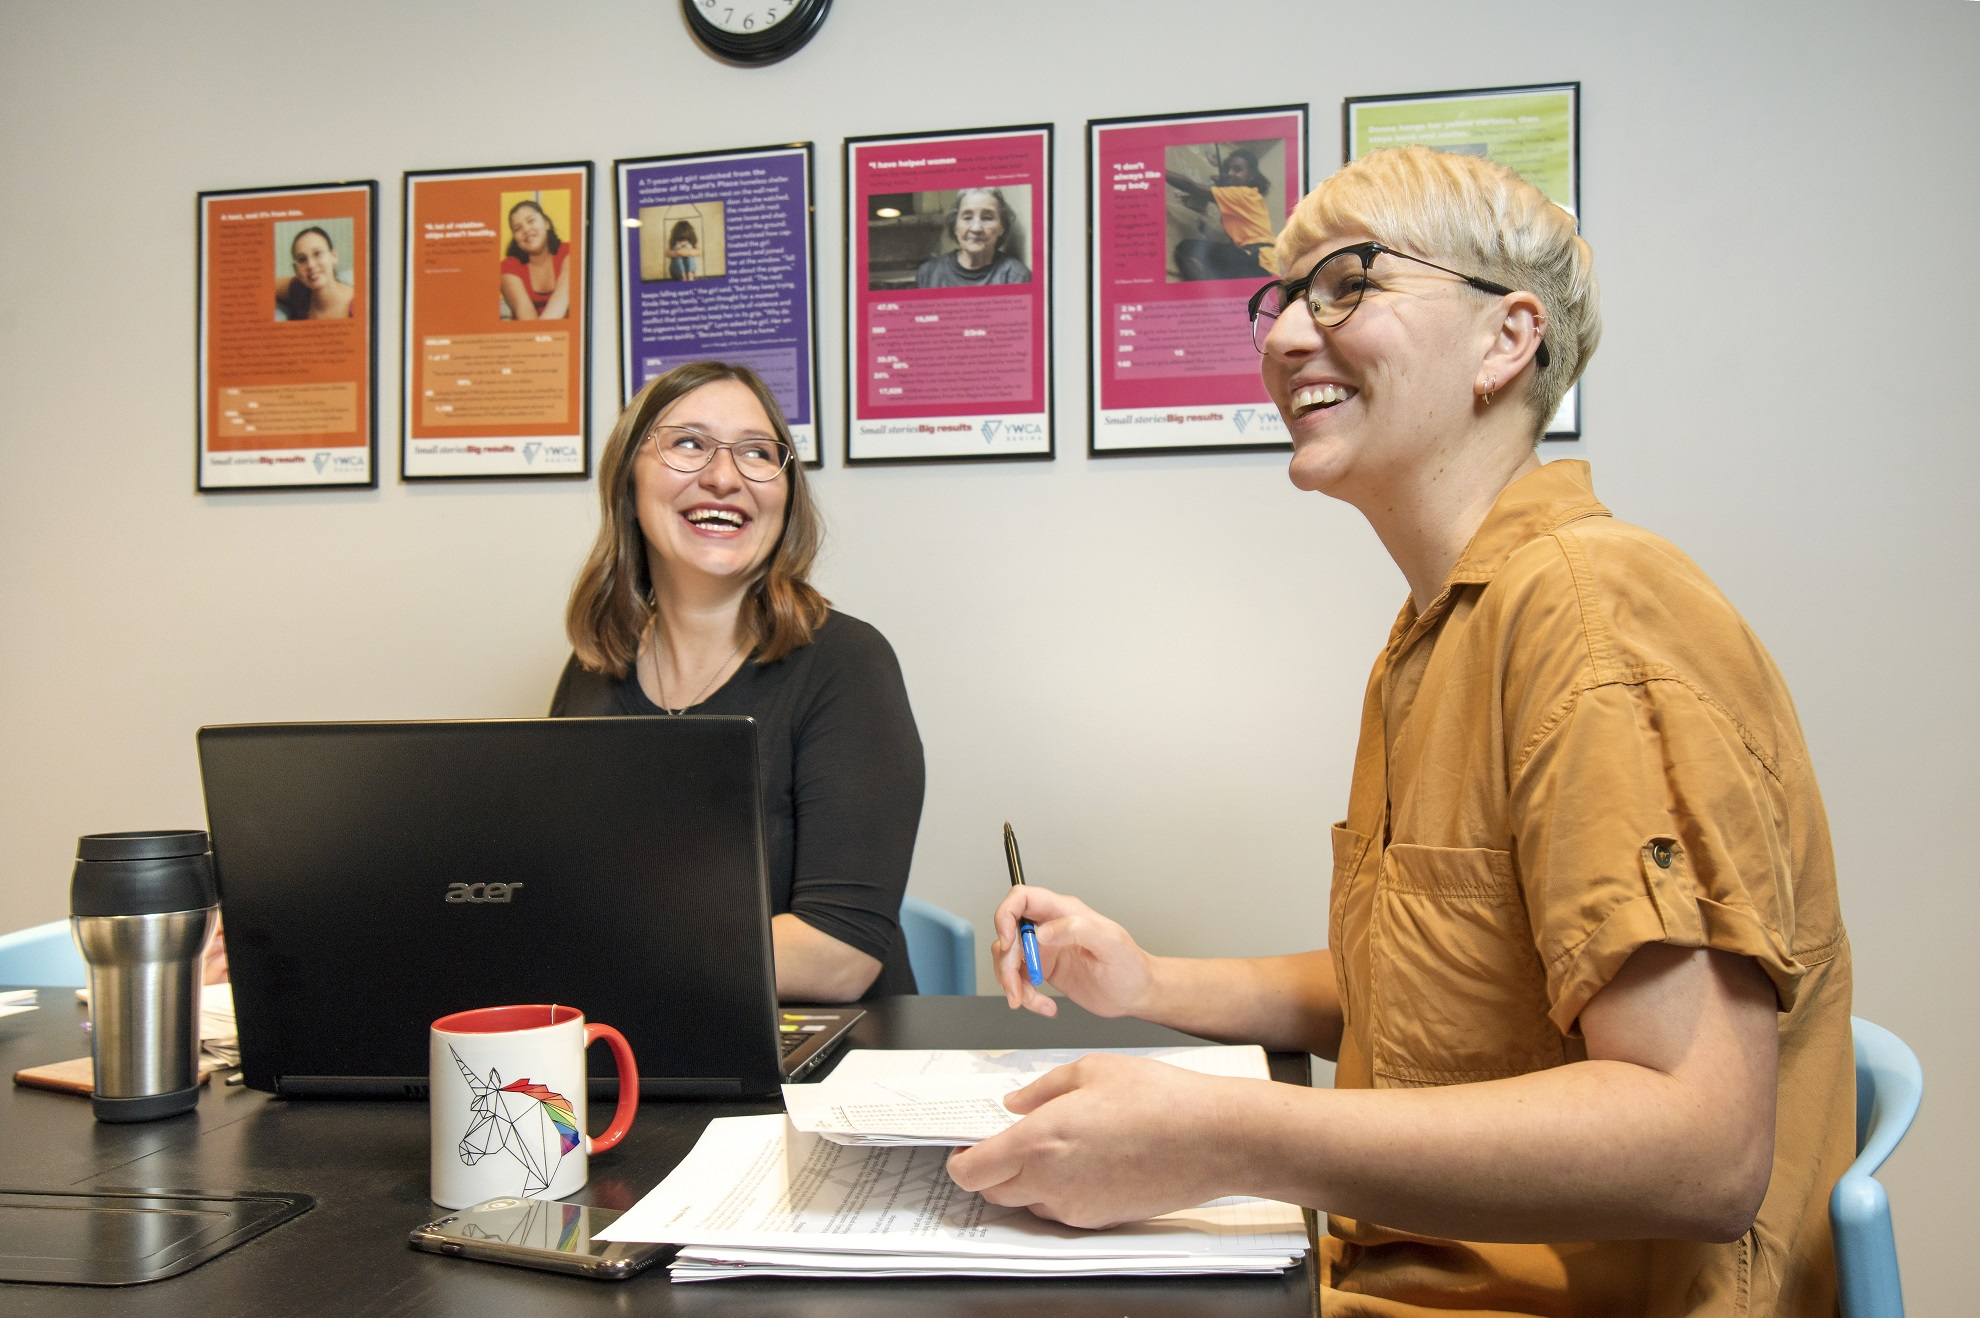 Lindsay Dell (left) and Tara Molson share a laugh during a morning meeting at YWCA Regina. Photo by Trevor Hopkin